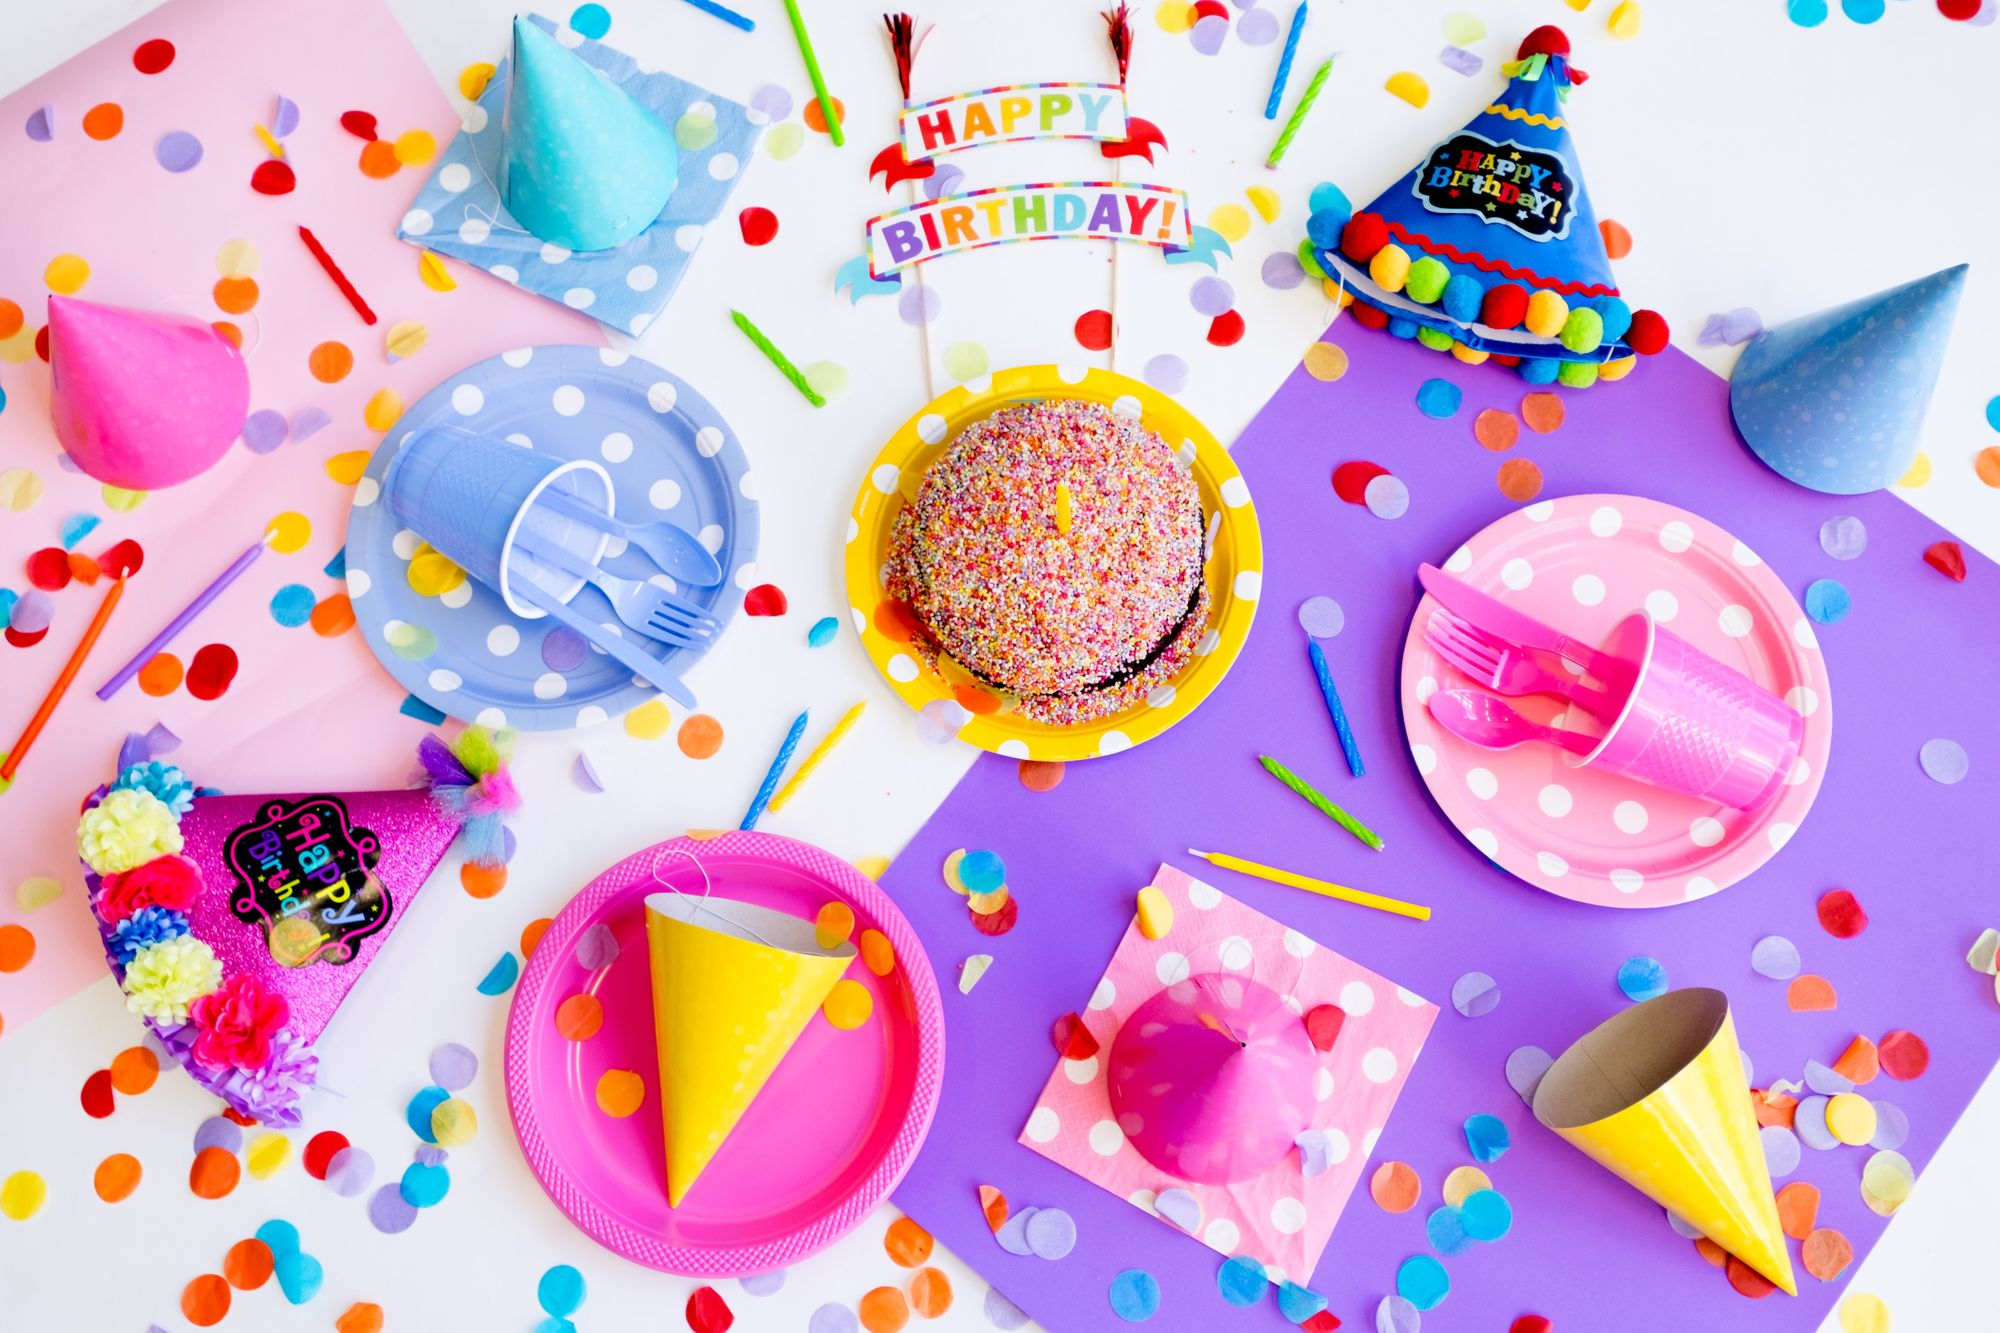 Event planning and birthday party side hustle for moms